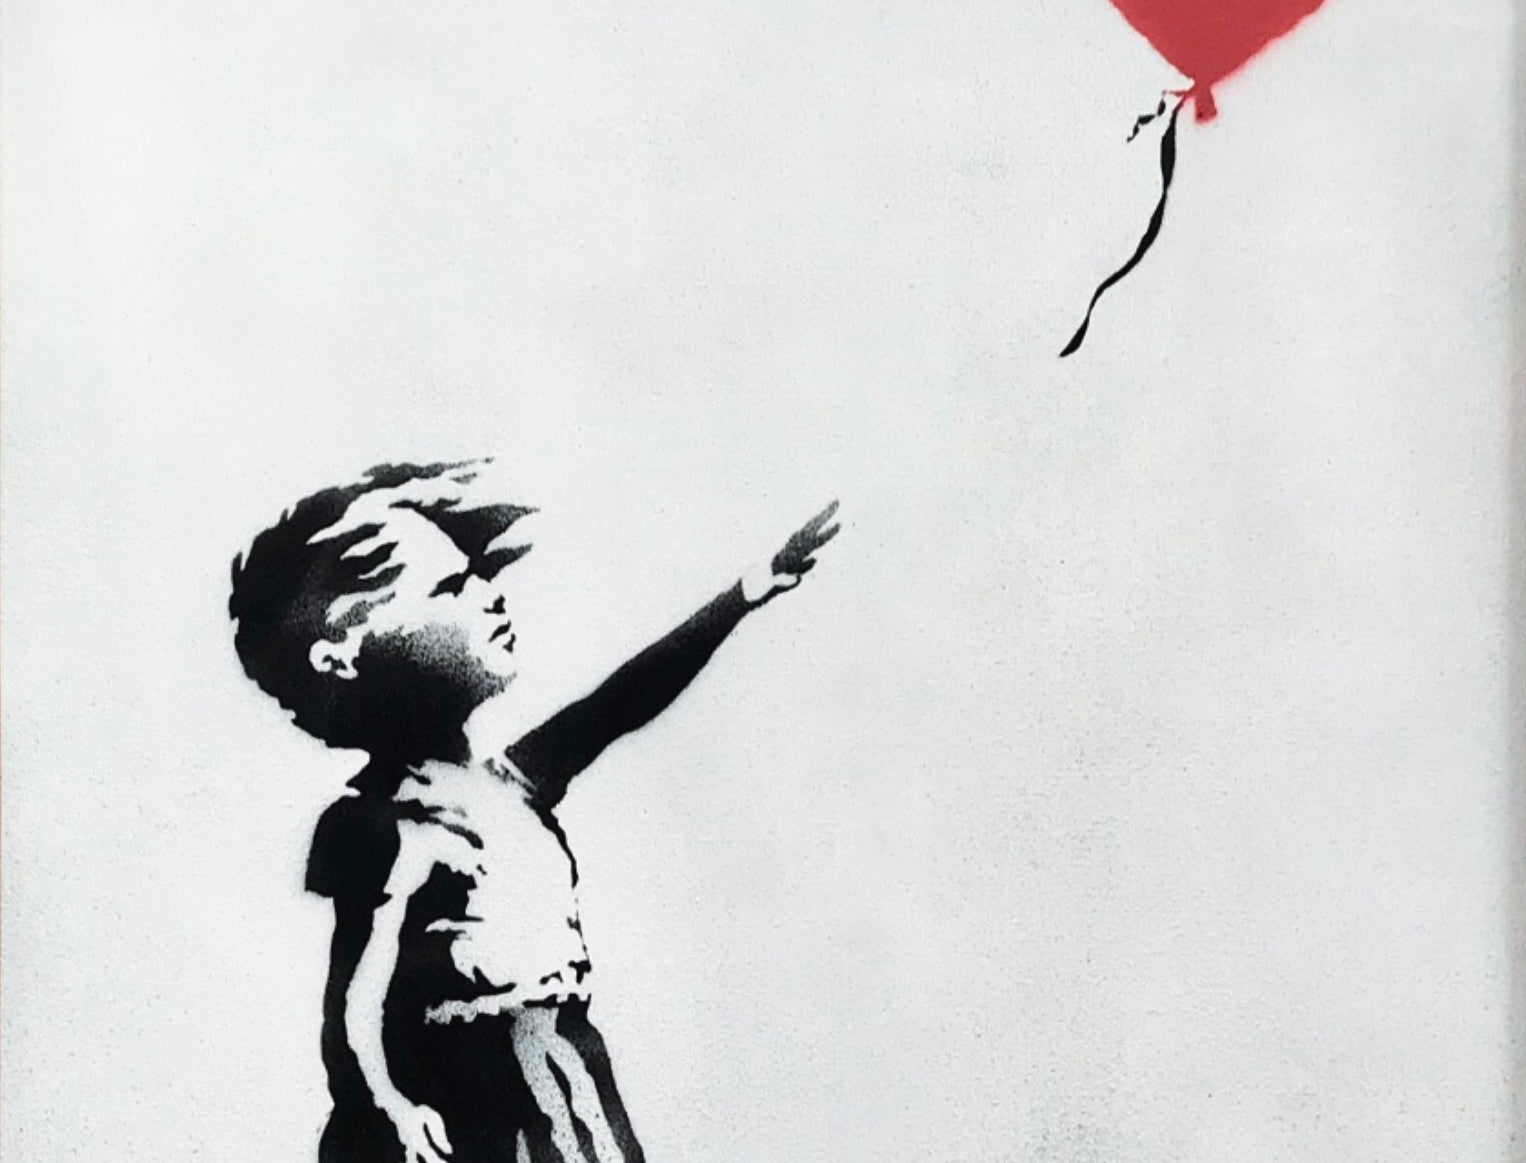 $1.4 Million Banksy Piece Self-Destructs After Sotheby's Auction